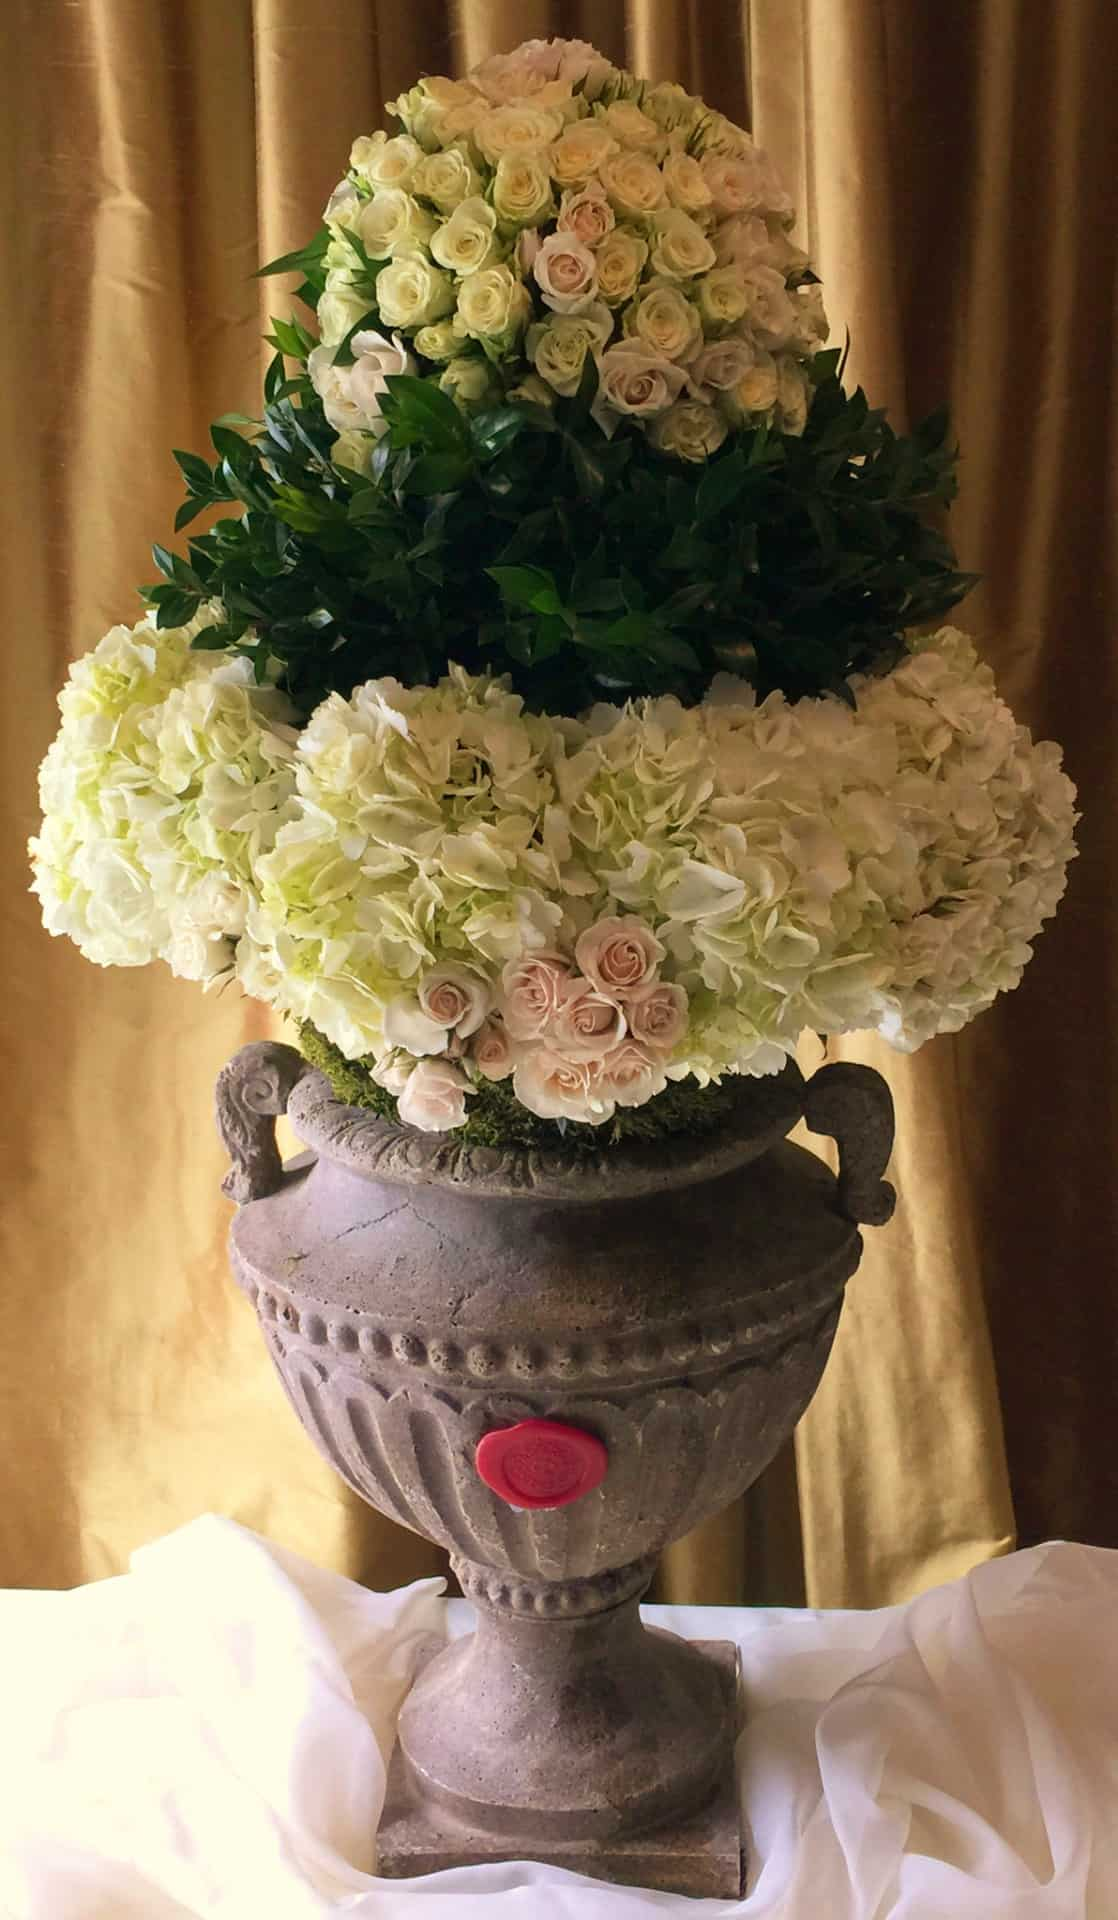 Sphere of blush spray roses, hydrangea and foliage in a gray stone urn